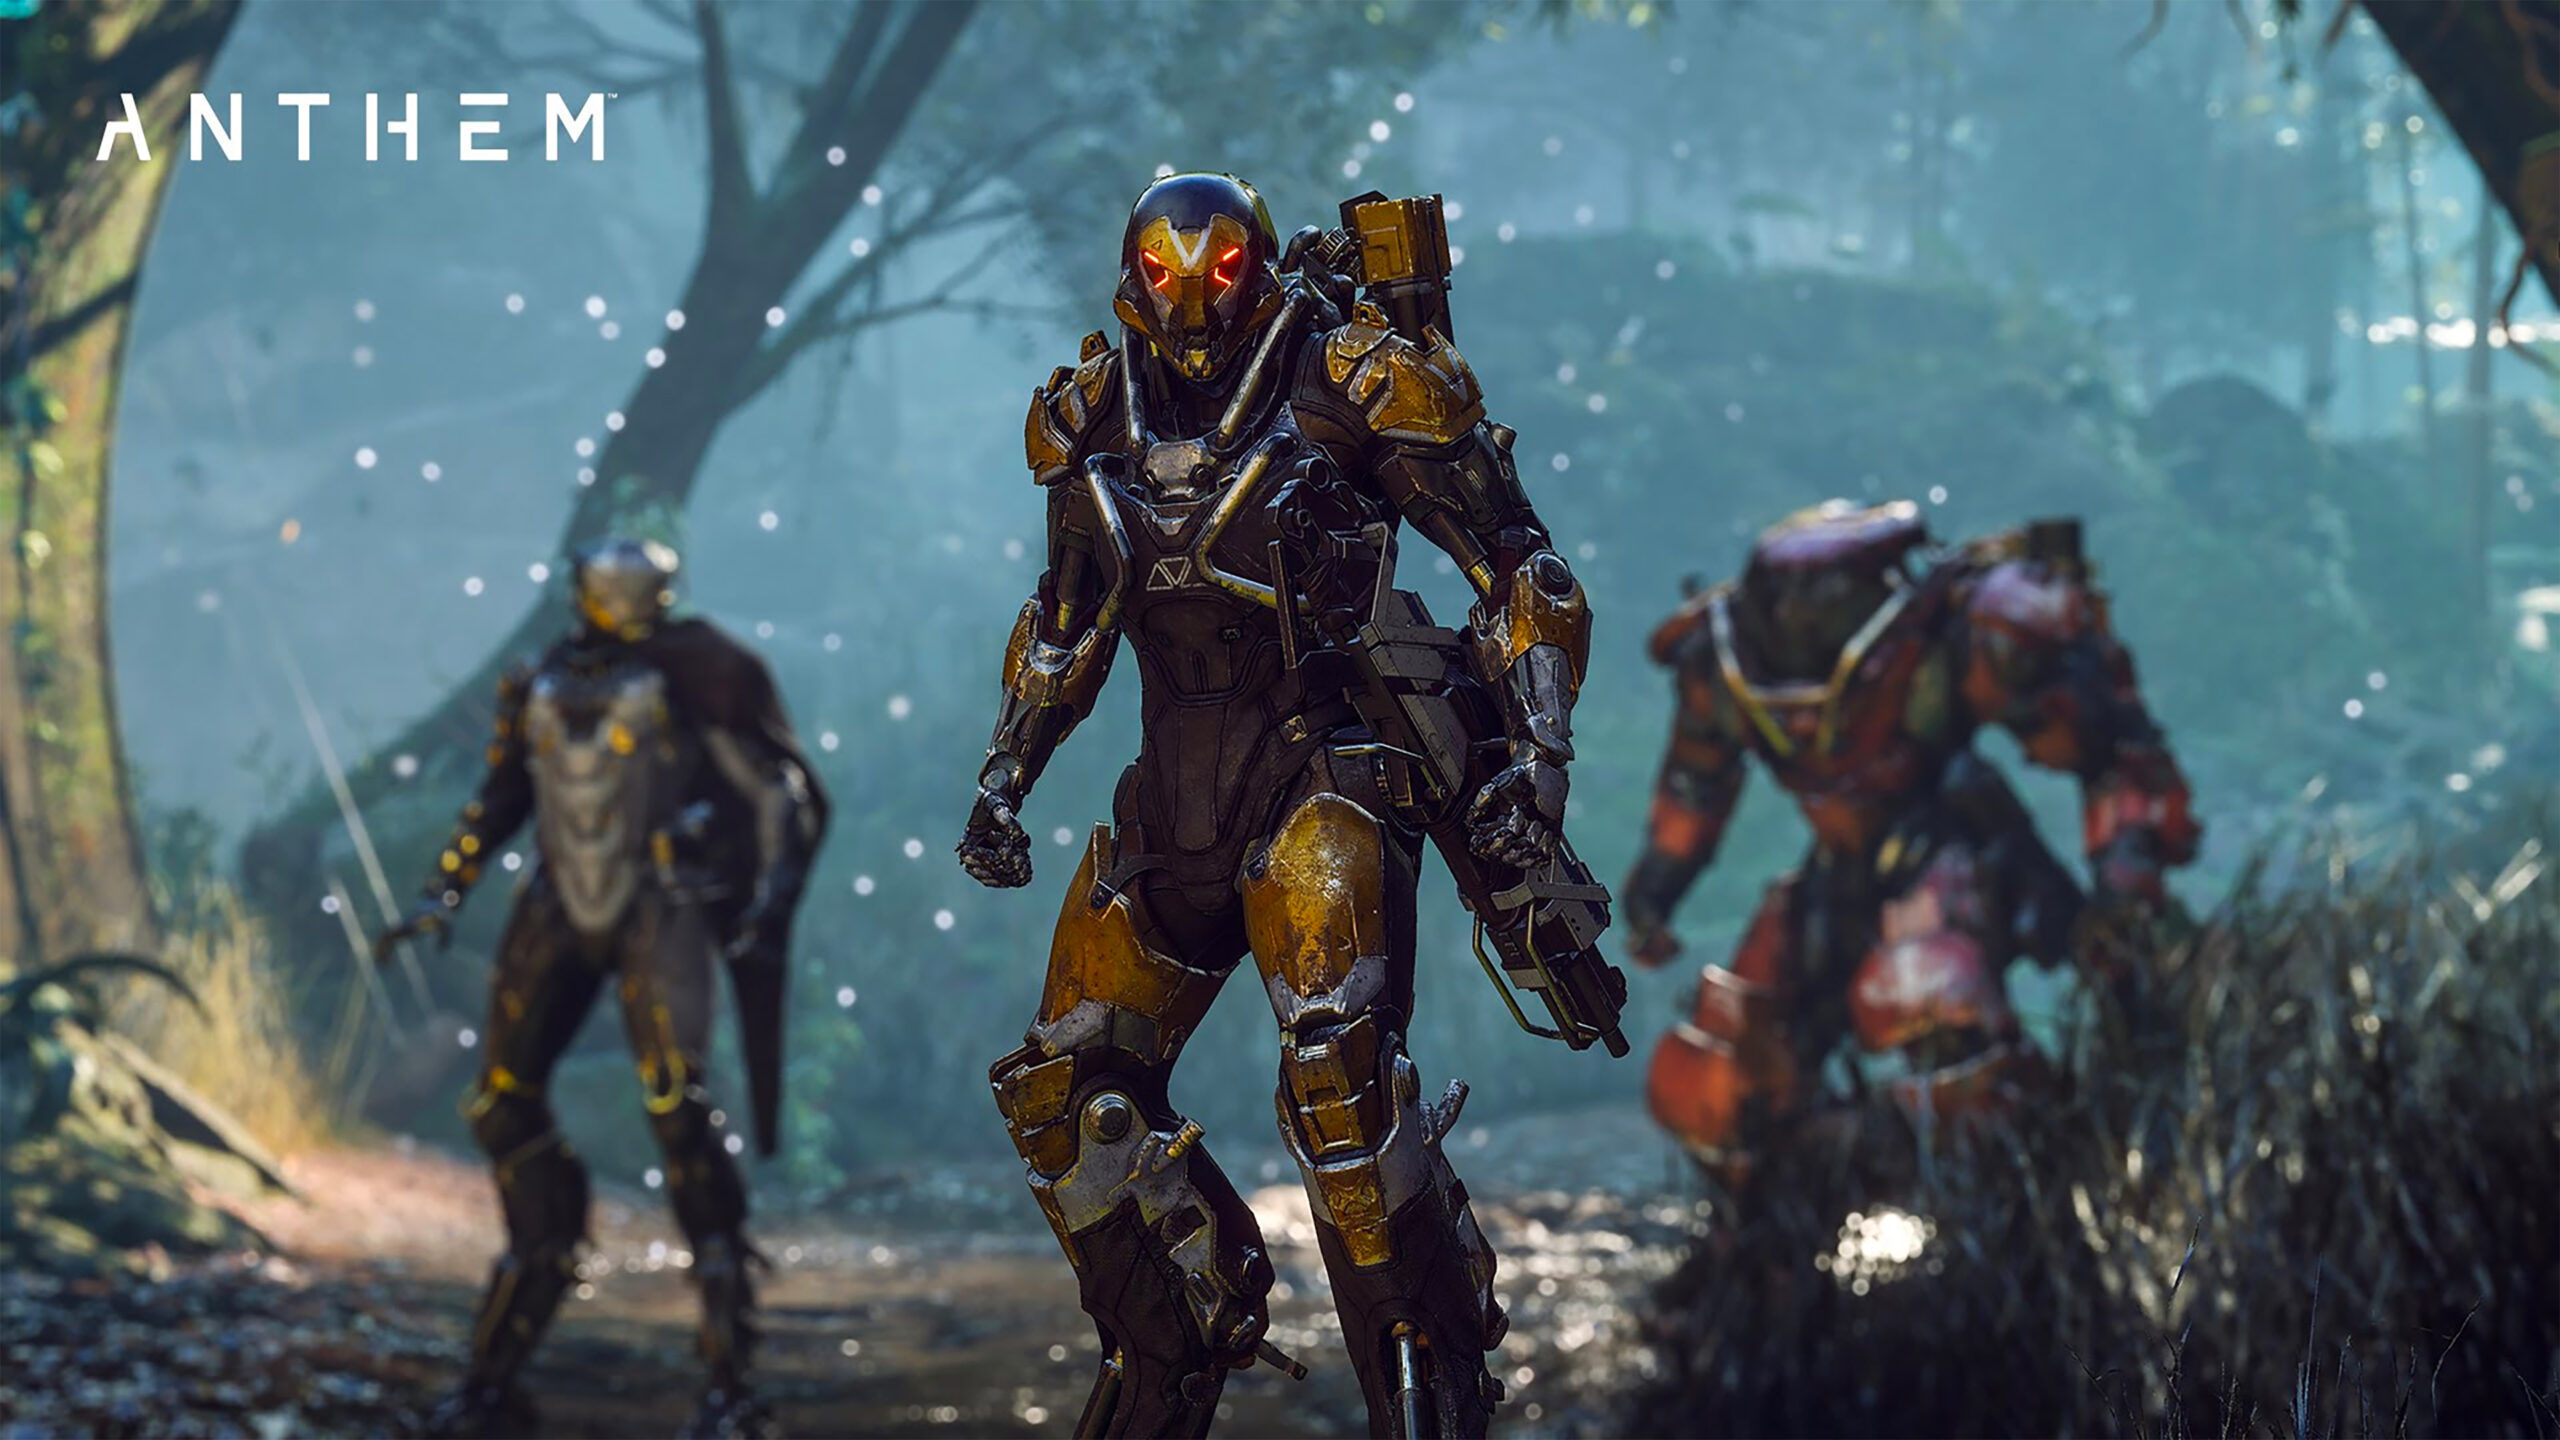 Anthem Wallpaper HD